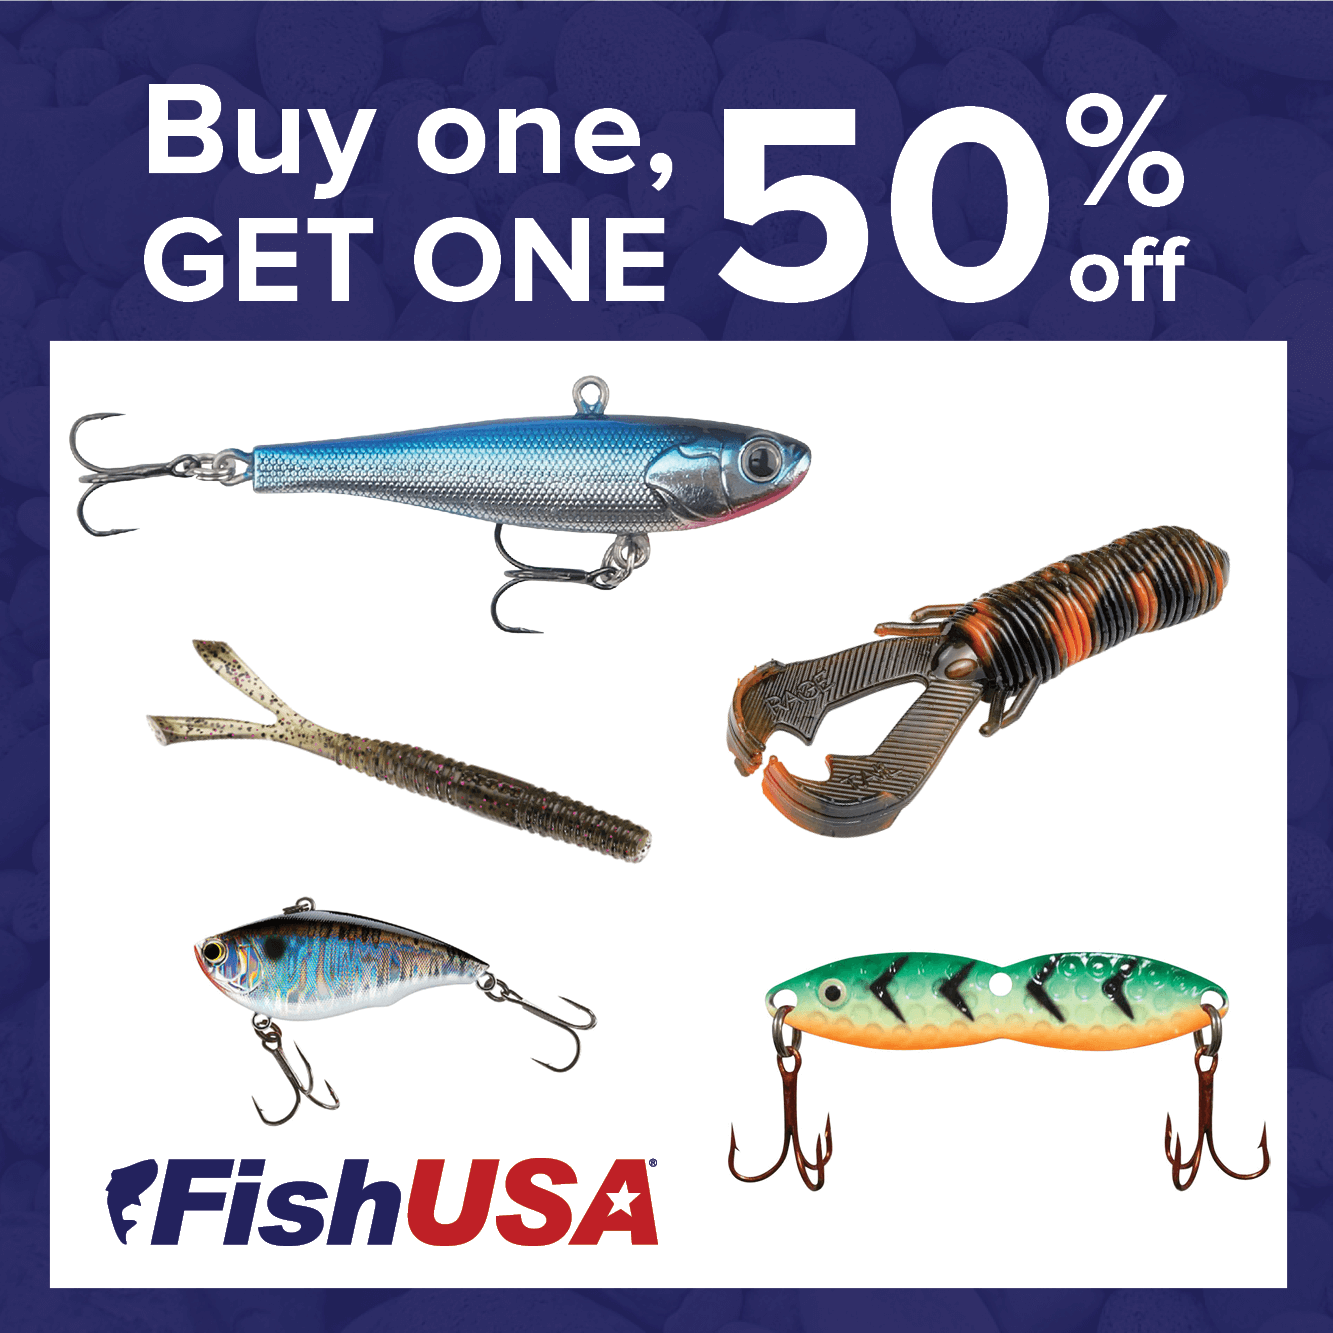 Lures & Baits Buy 1, Get 1 at 50% Off!